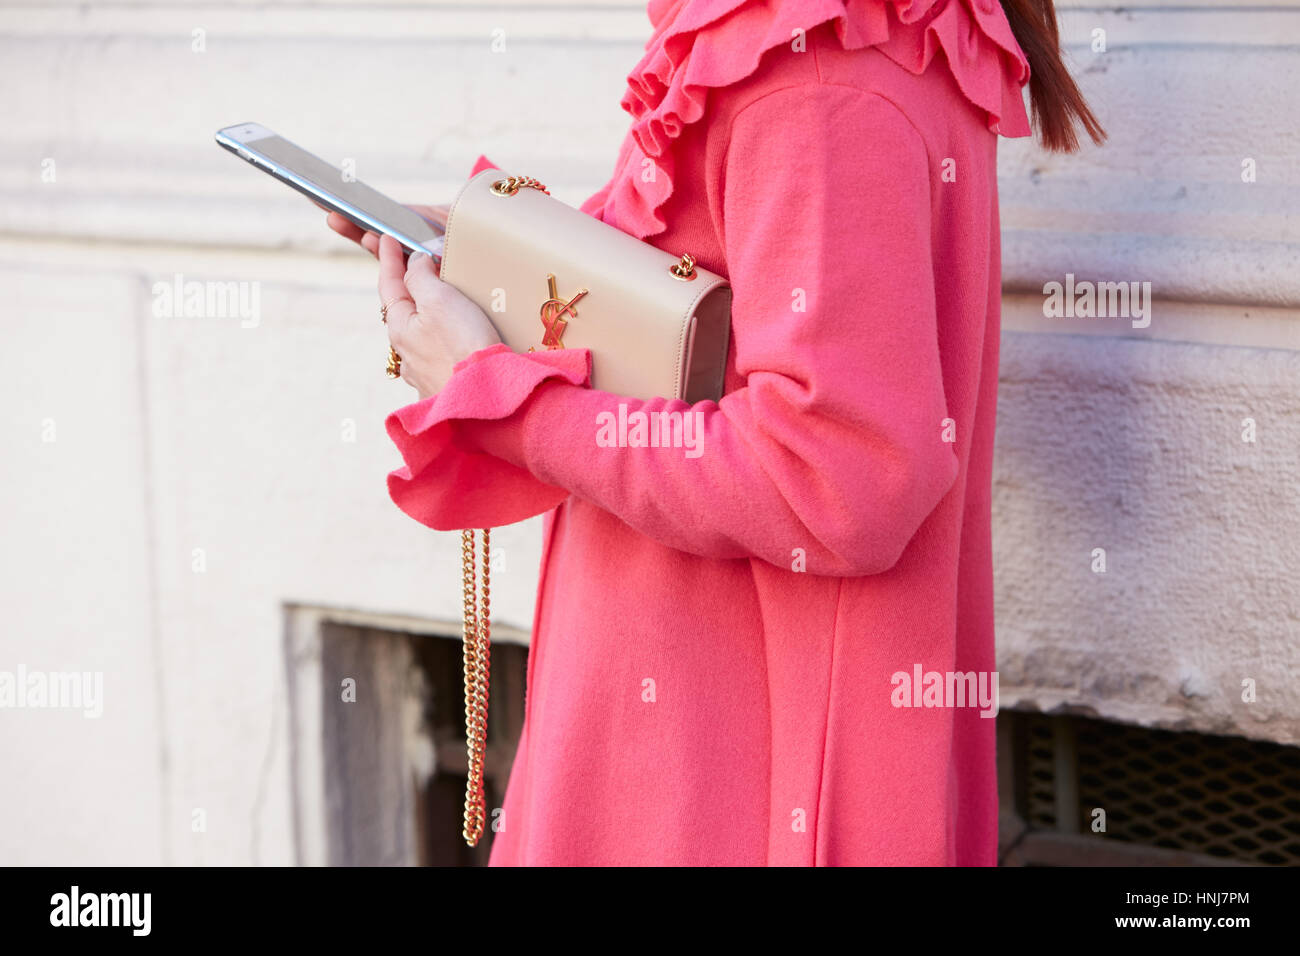 Woman with Yves Saint Laurent beige bag and pink coat before Etro fashion show, Milan Fashion Week street style - Stock Image